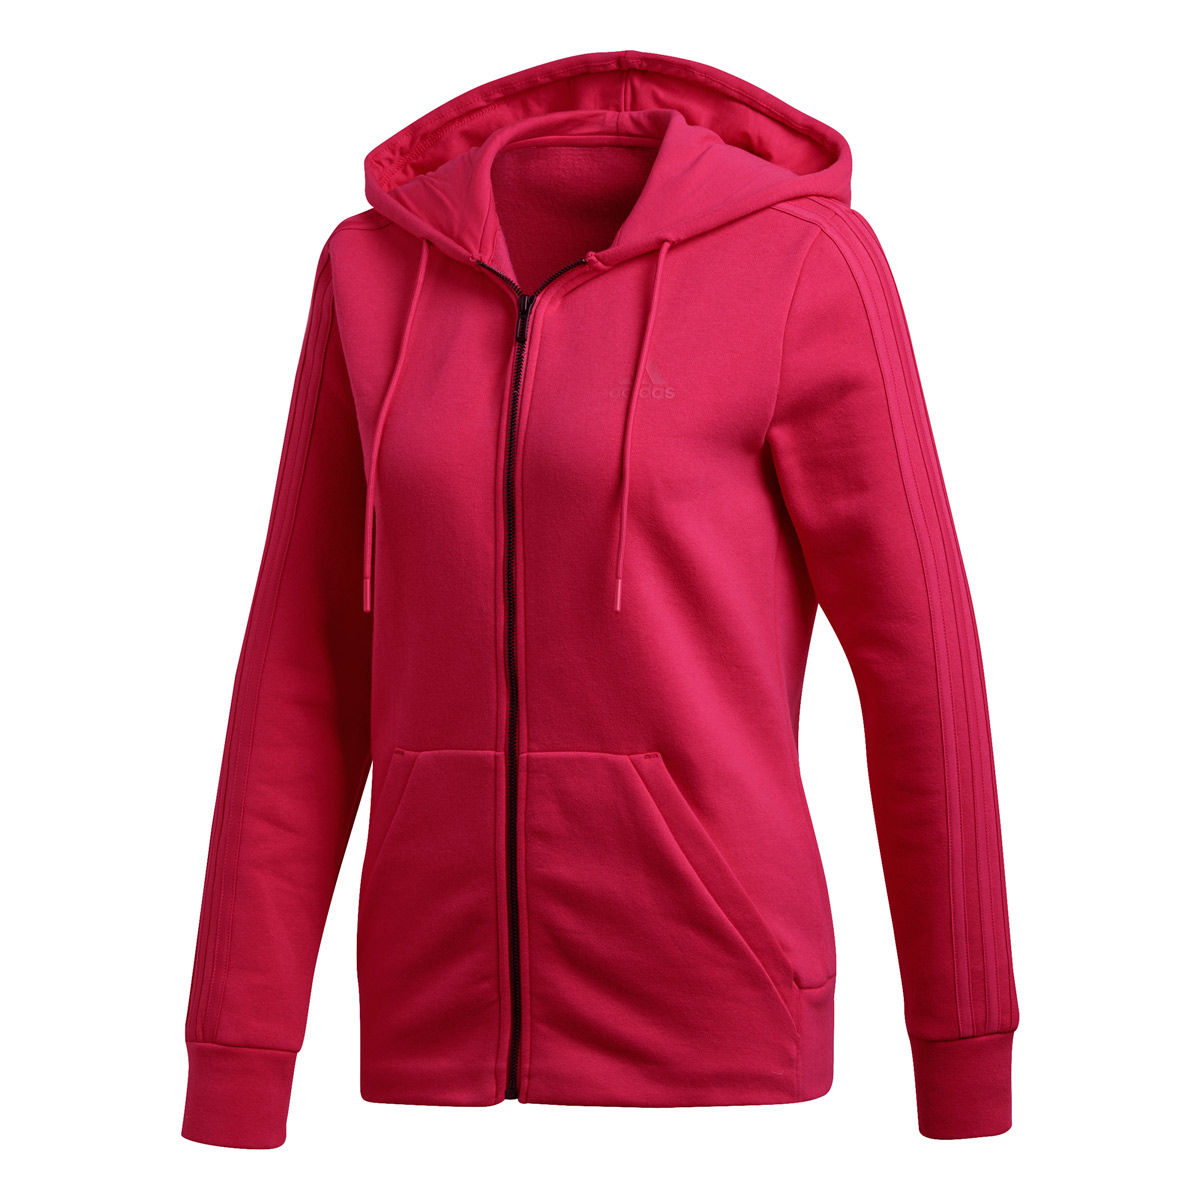 adidas 3 Stripes Womens Fleece Full Zip Hoodie